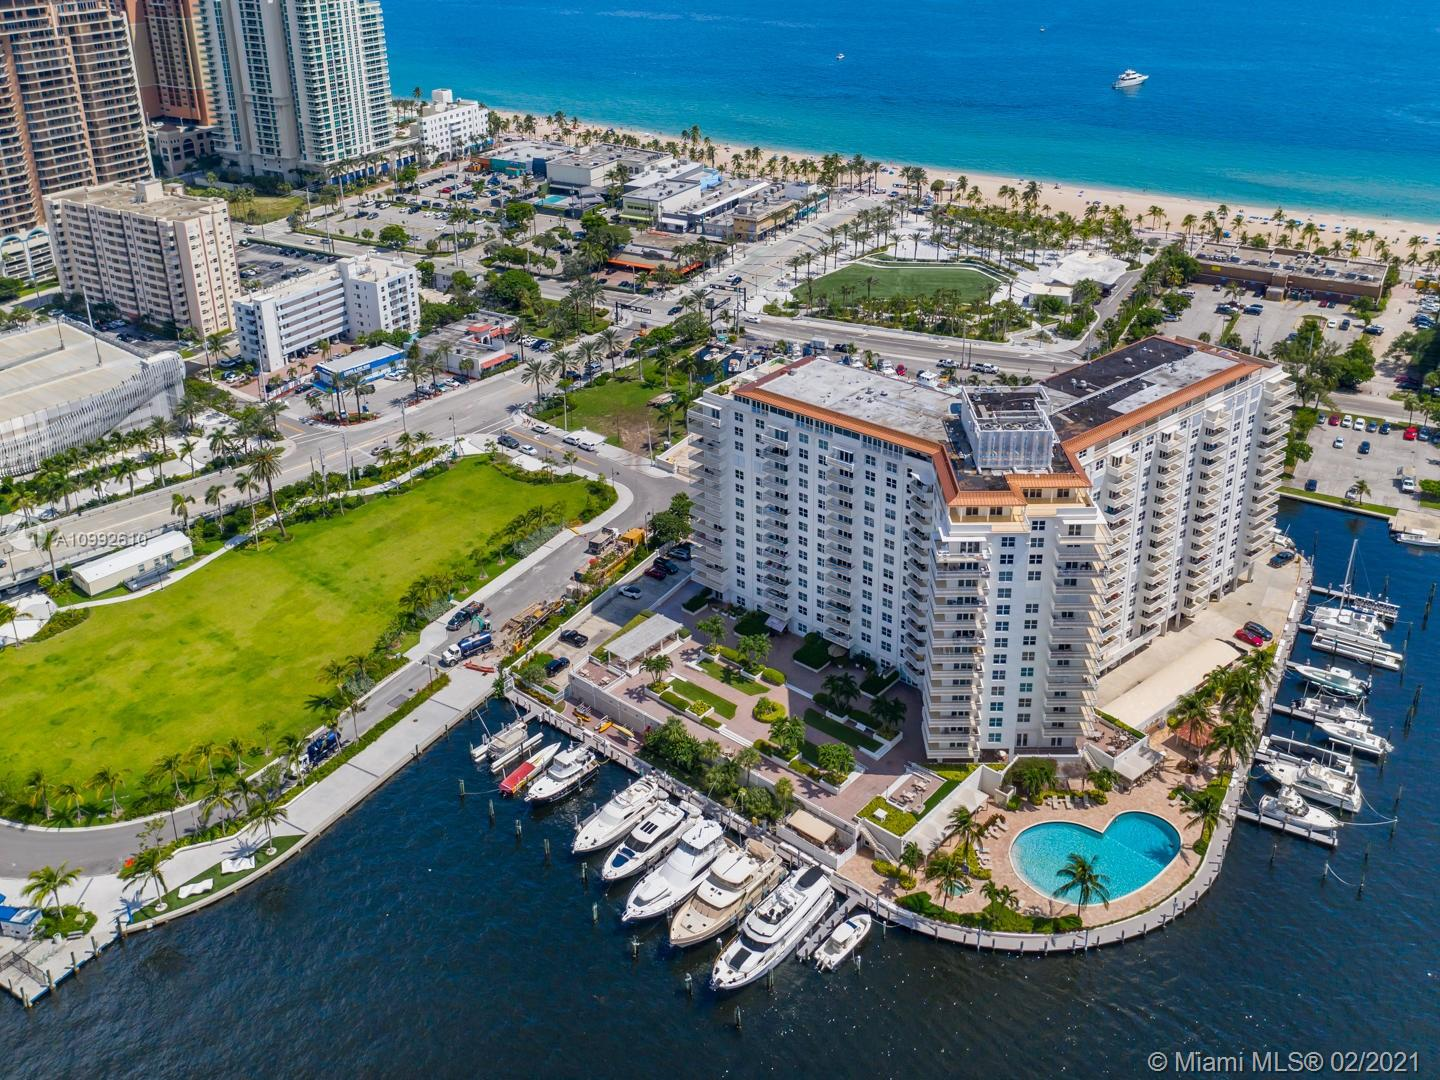 The Venetian has it all. This spectacular spacious 2/2 condo has views of the Ocean, Intercoastal, yachts galore, both the Las Olas Bridge & the 17th St. Bridge, Downtown Las Olas & city lights of downtown FTL. Watch the sunrise on your oceanfront balcony then watch it set on your intercoastal balcony. Beautiful pool situated on the intercoastal w/an outdoor jacuzzi, 7 grills, Tiki Hut w/TVs & Wet Bar. View the annual FTL Boat Show, watch the jets fly over to the Annual Air & Sea Show, watch cruise ships come & go and enjoy the FTL Boat Parade. Boat slip option, library, game room, sauna, gym, an event room w/full kitchen, workshop w/machinery, covered parking & sprinkler system. Unit is completely renovated, SS appliances, interior doors, hurricane windows, crown molding & storage.